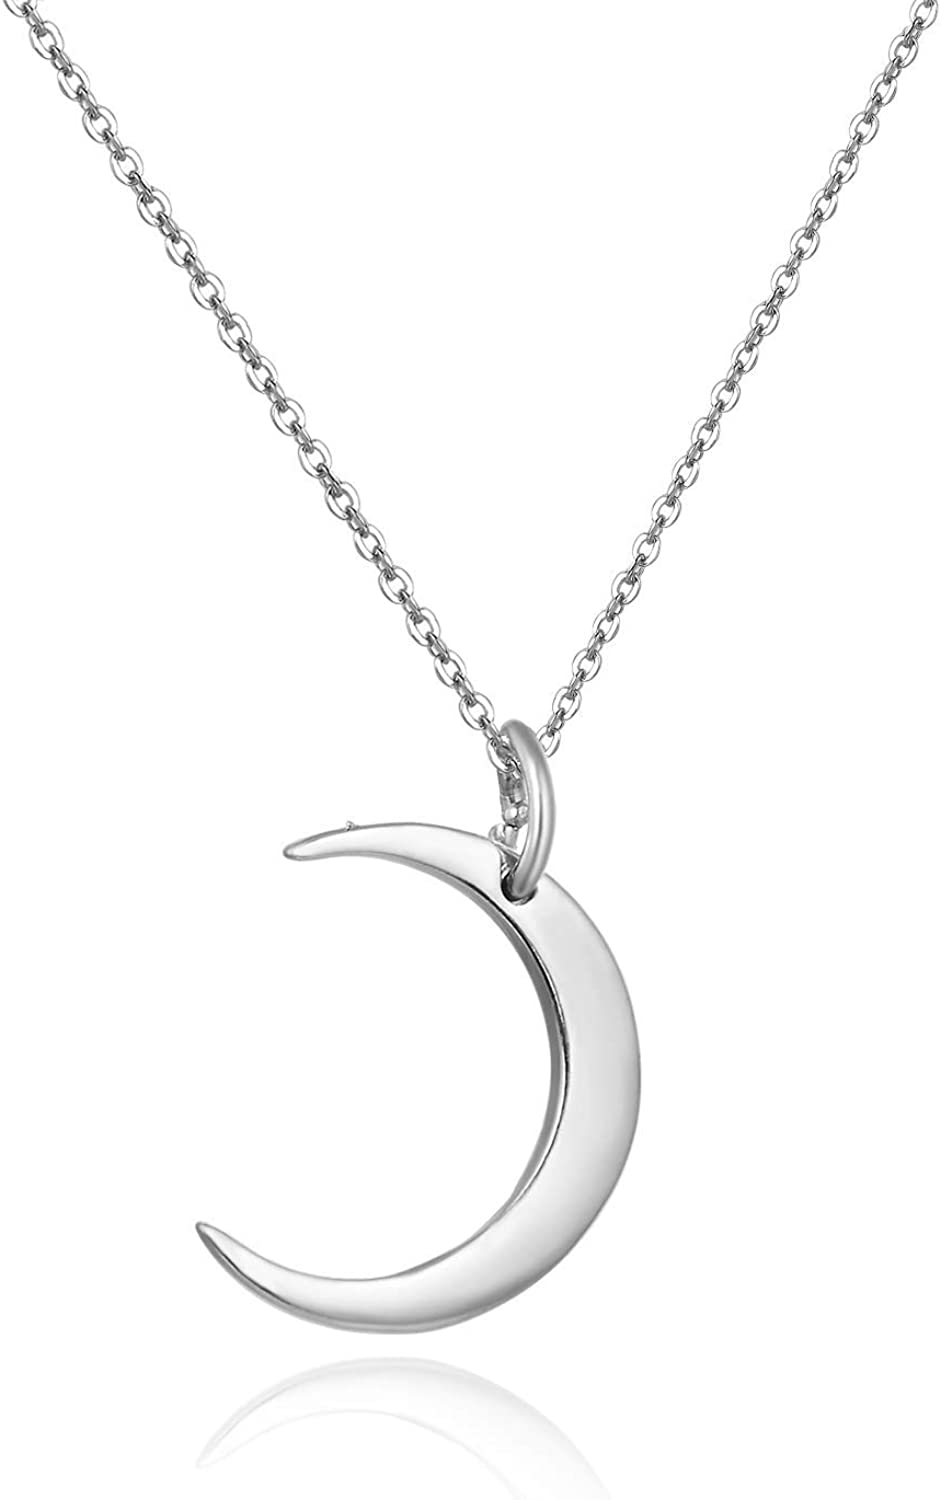 Sterling Silver Crescent Moon Pendant Necklace Layering Jewelry for Women Girls Anniversary Birthday Mother's Gifts